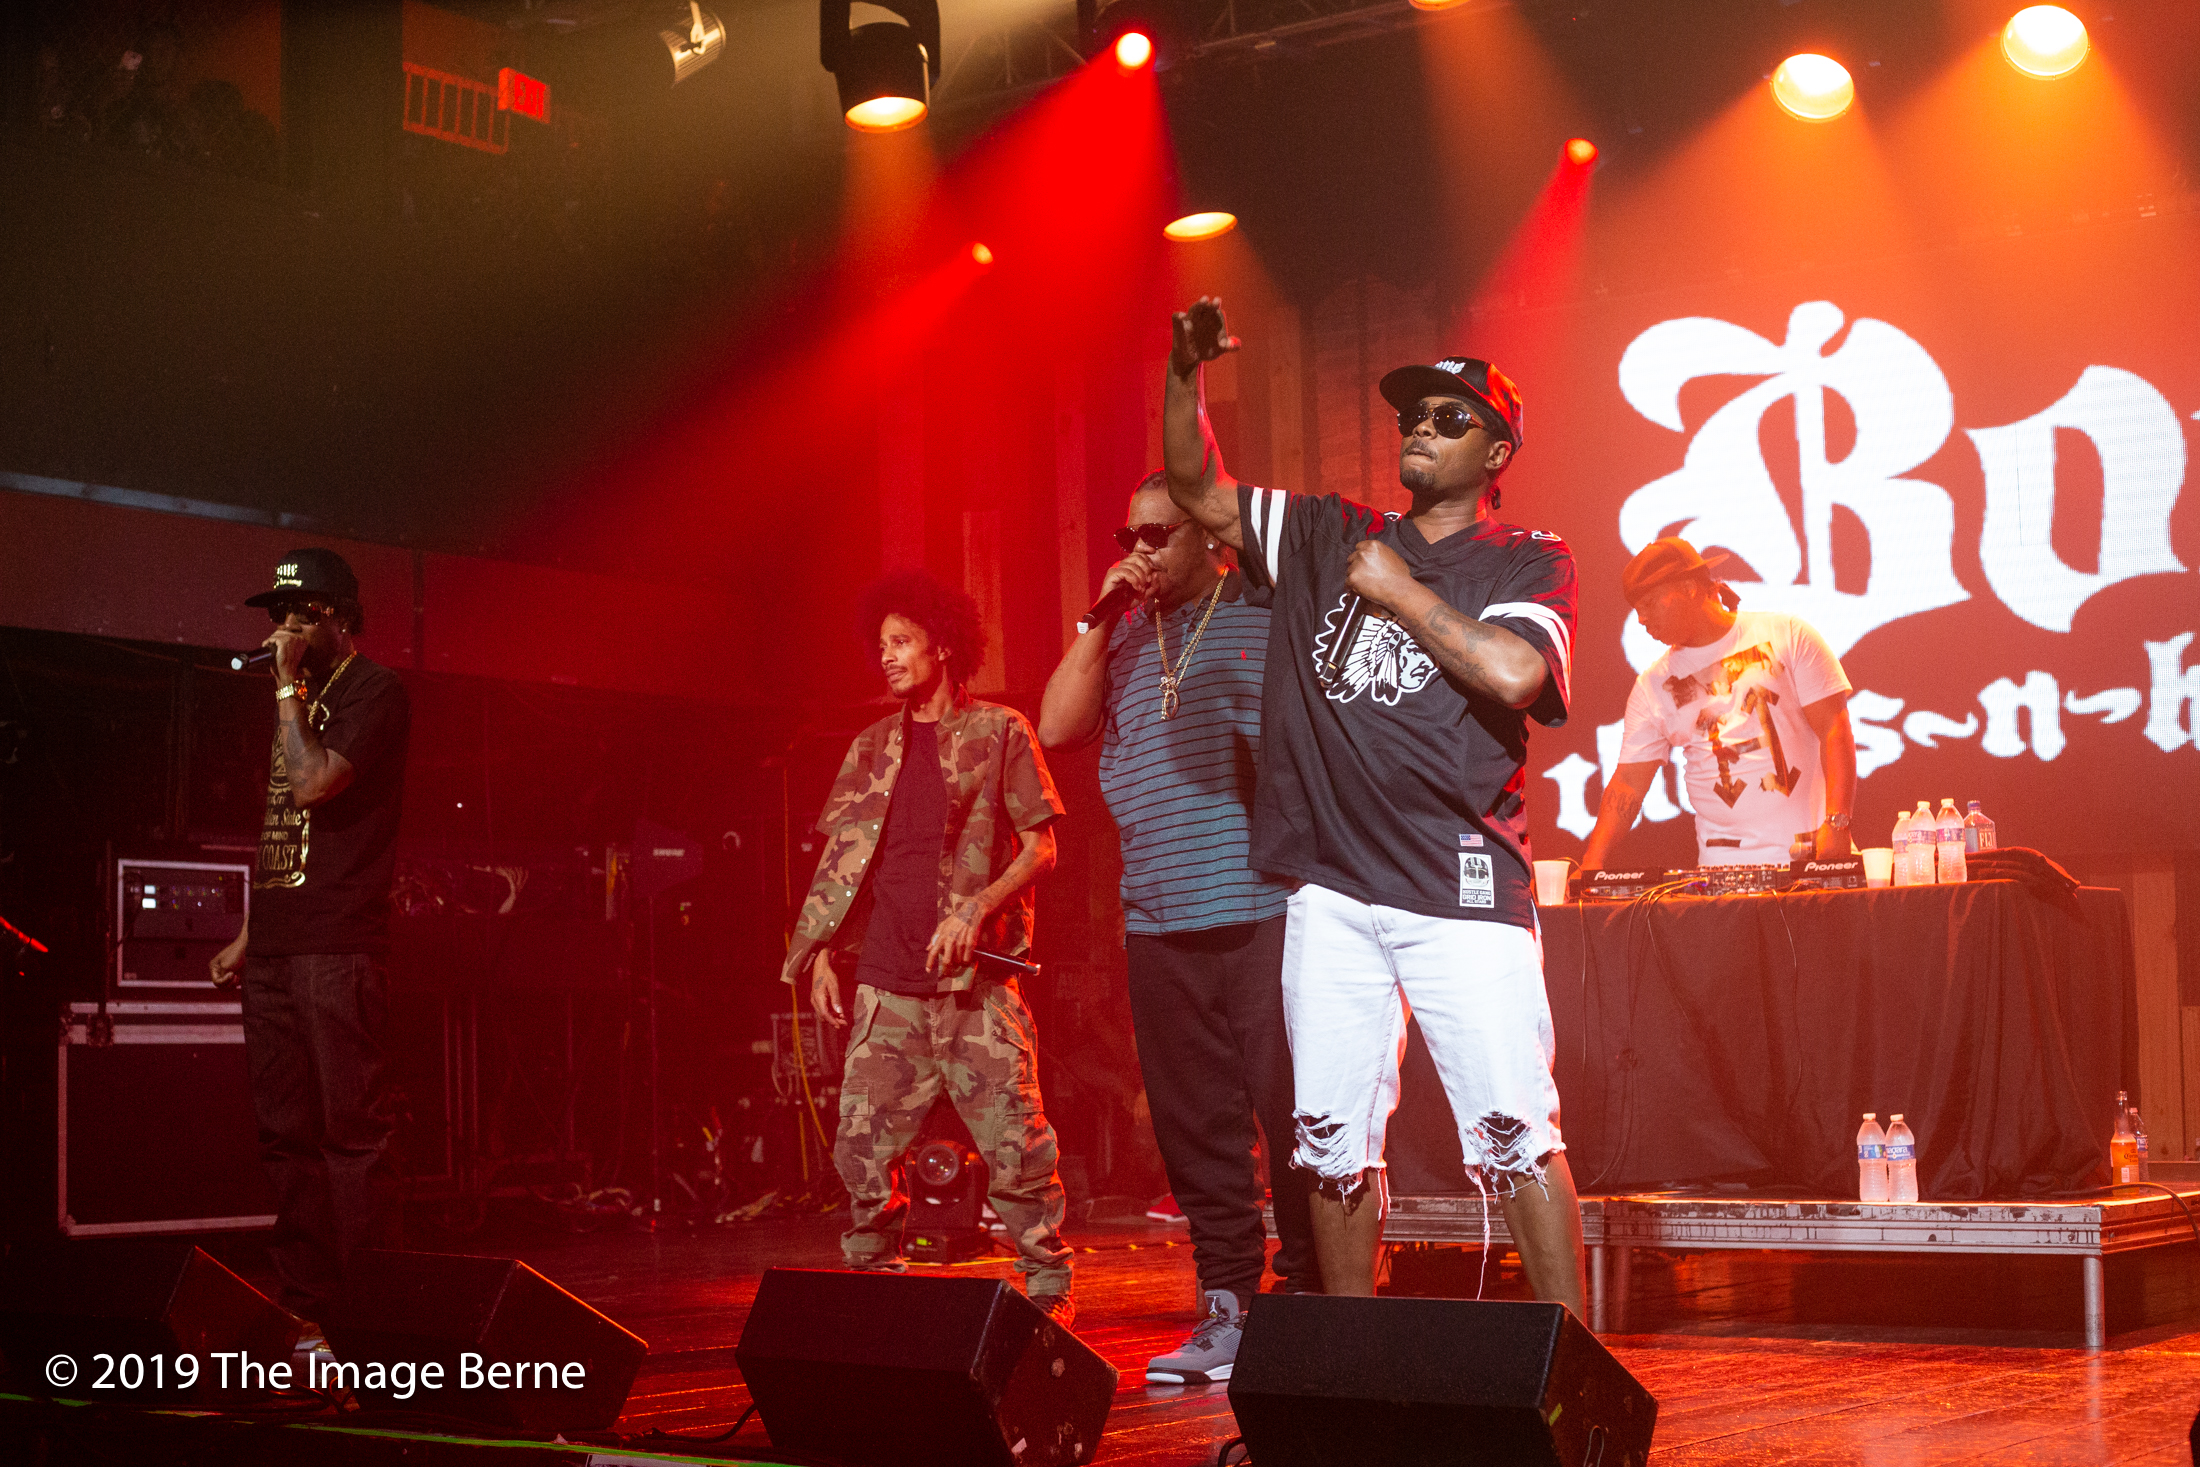 Krayzie Bone, Wish Bone, Flesh-N-Bone, Layzie Bone, and Bizzy Bone-077.jpg